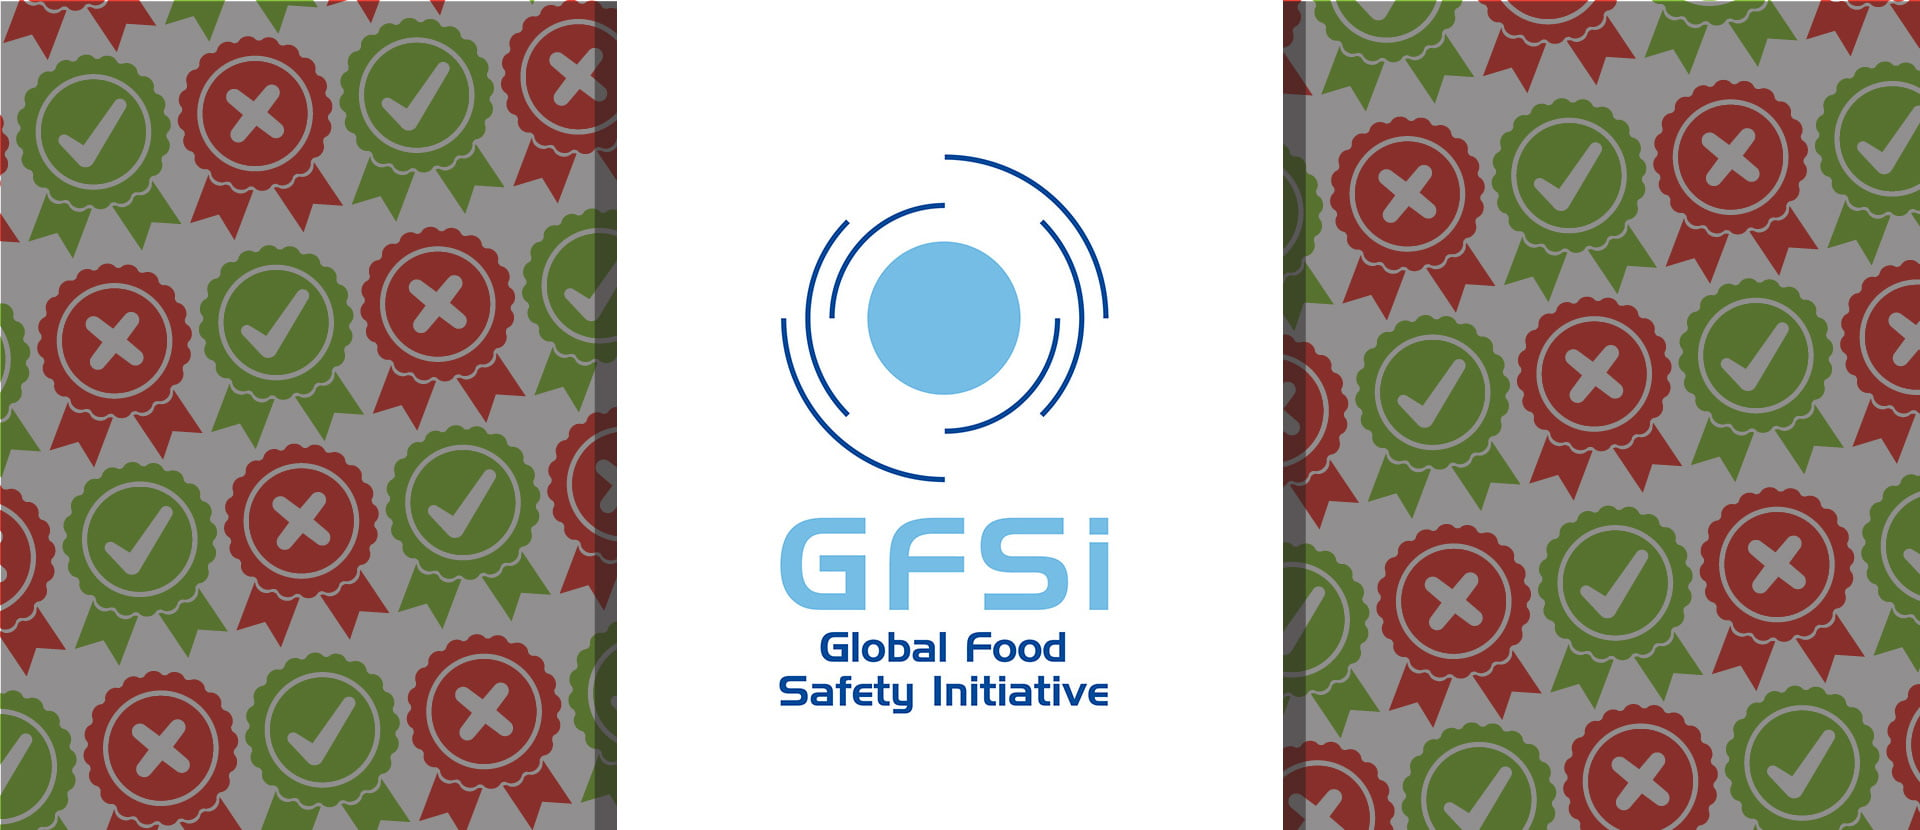 GFSI update their position on audits during COVID-19